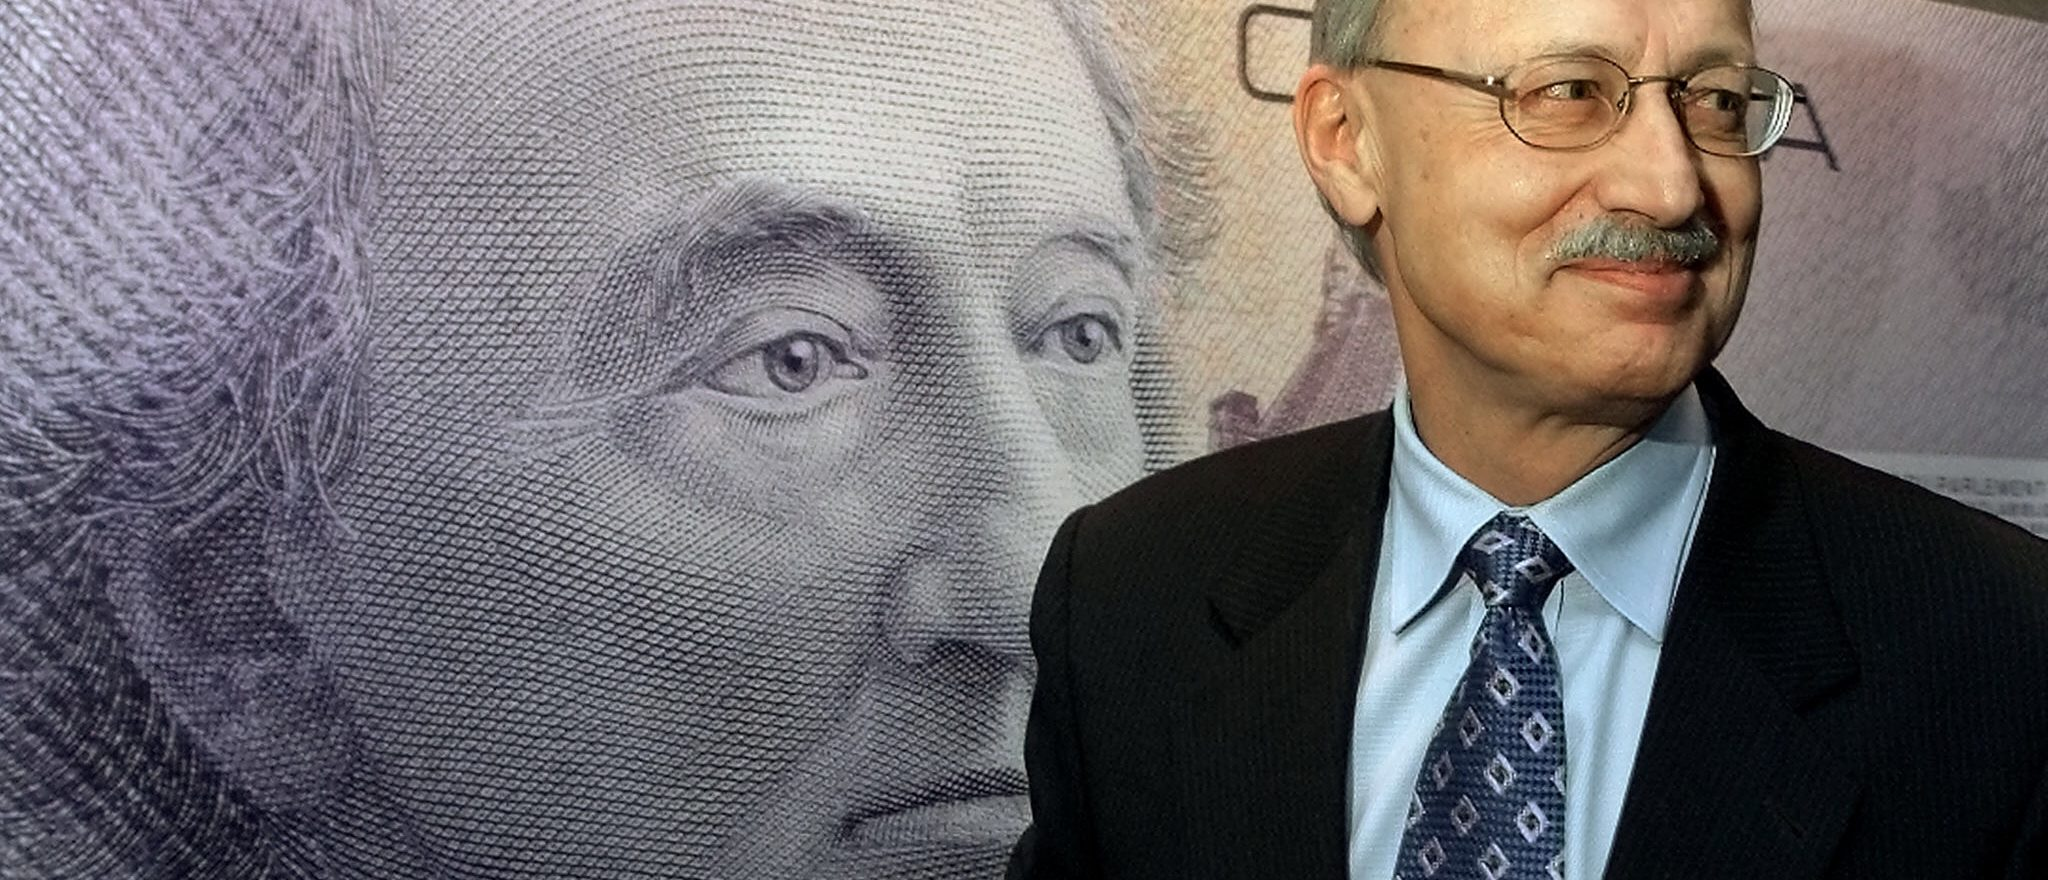 FILE -- Governor of the Bank of Canada Gordon Thiessen walks past the design of the new Canadian 10 dollar bill in Ottawa, January, 17, 2001. The bill depicts a new portrait of former Canadian Prime Minister Sir John A. MacDonald. REUTERS